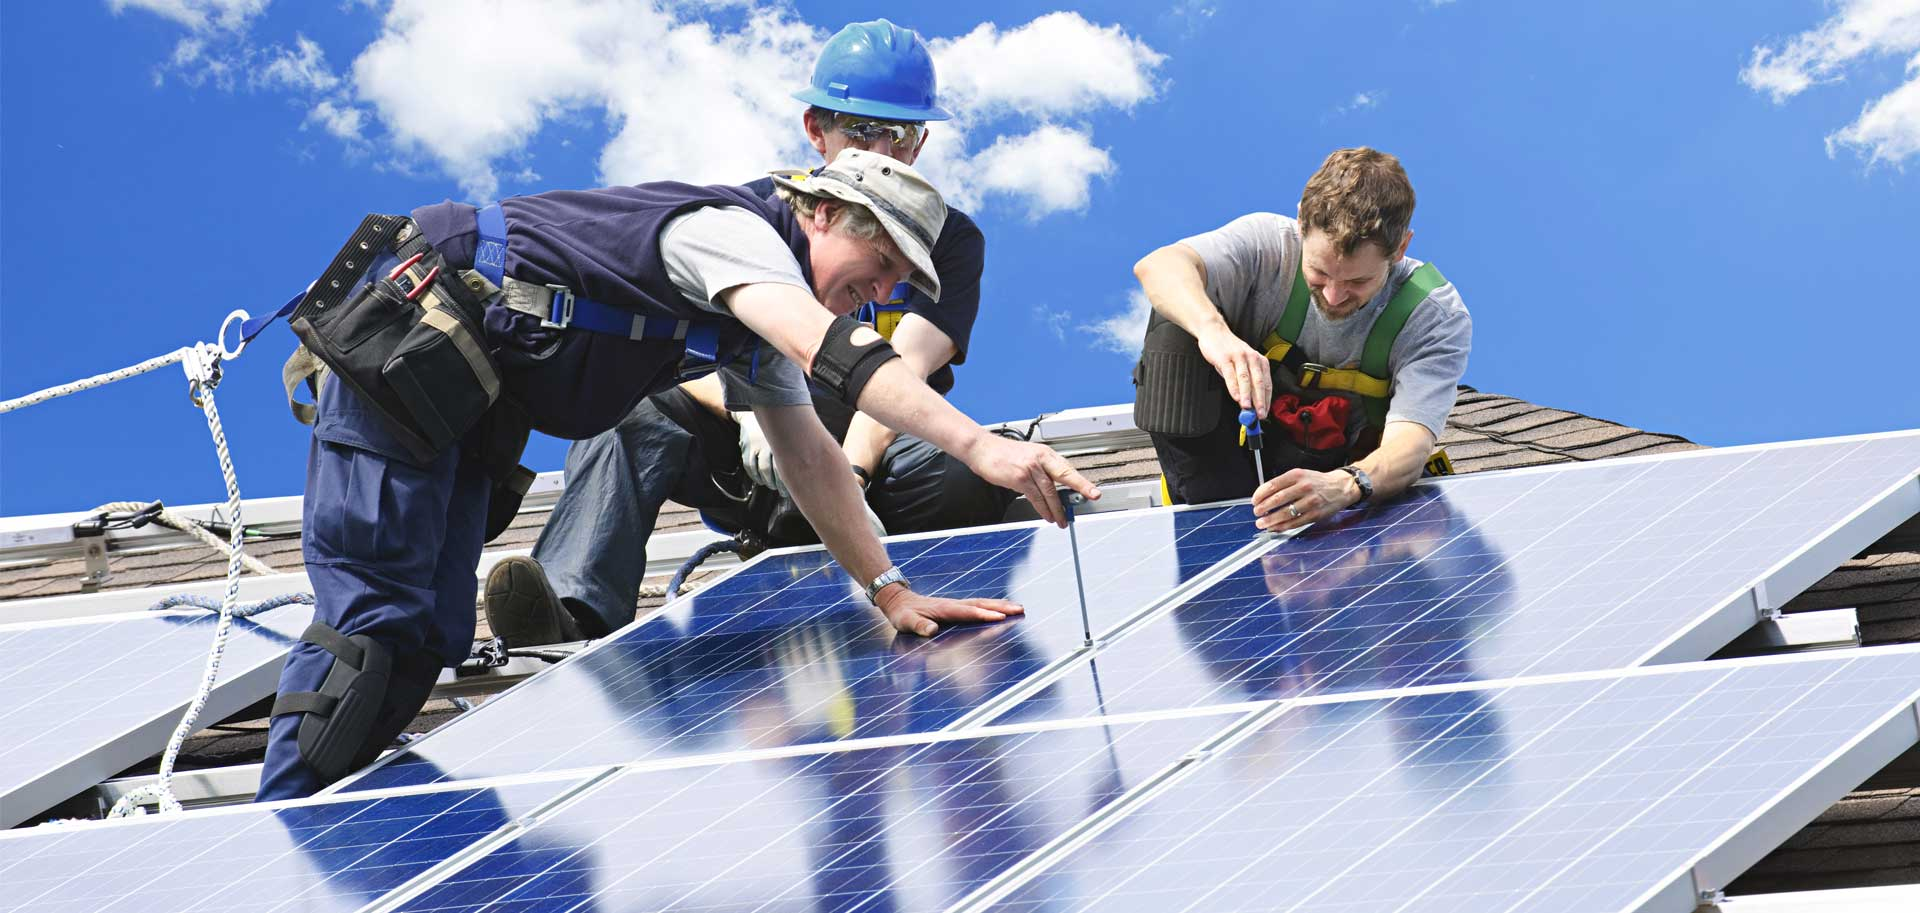 A Guide to Solar Panels' Installer For Home and Business in Shreveport, LA